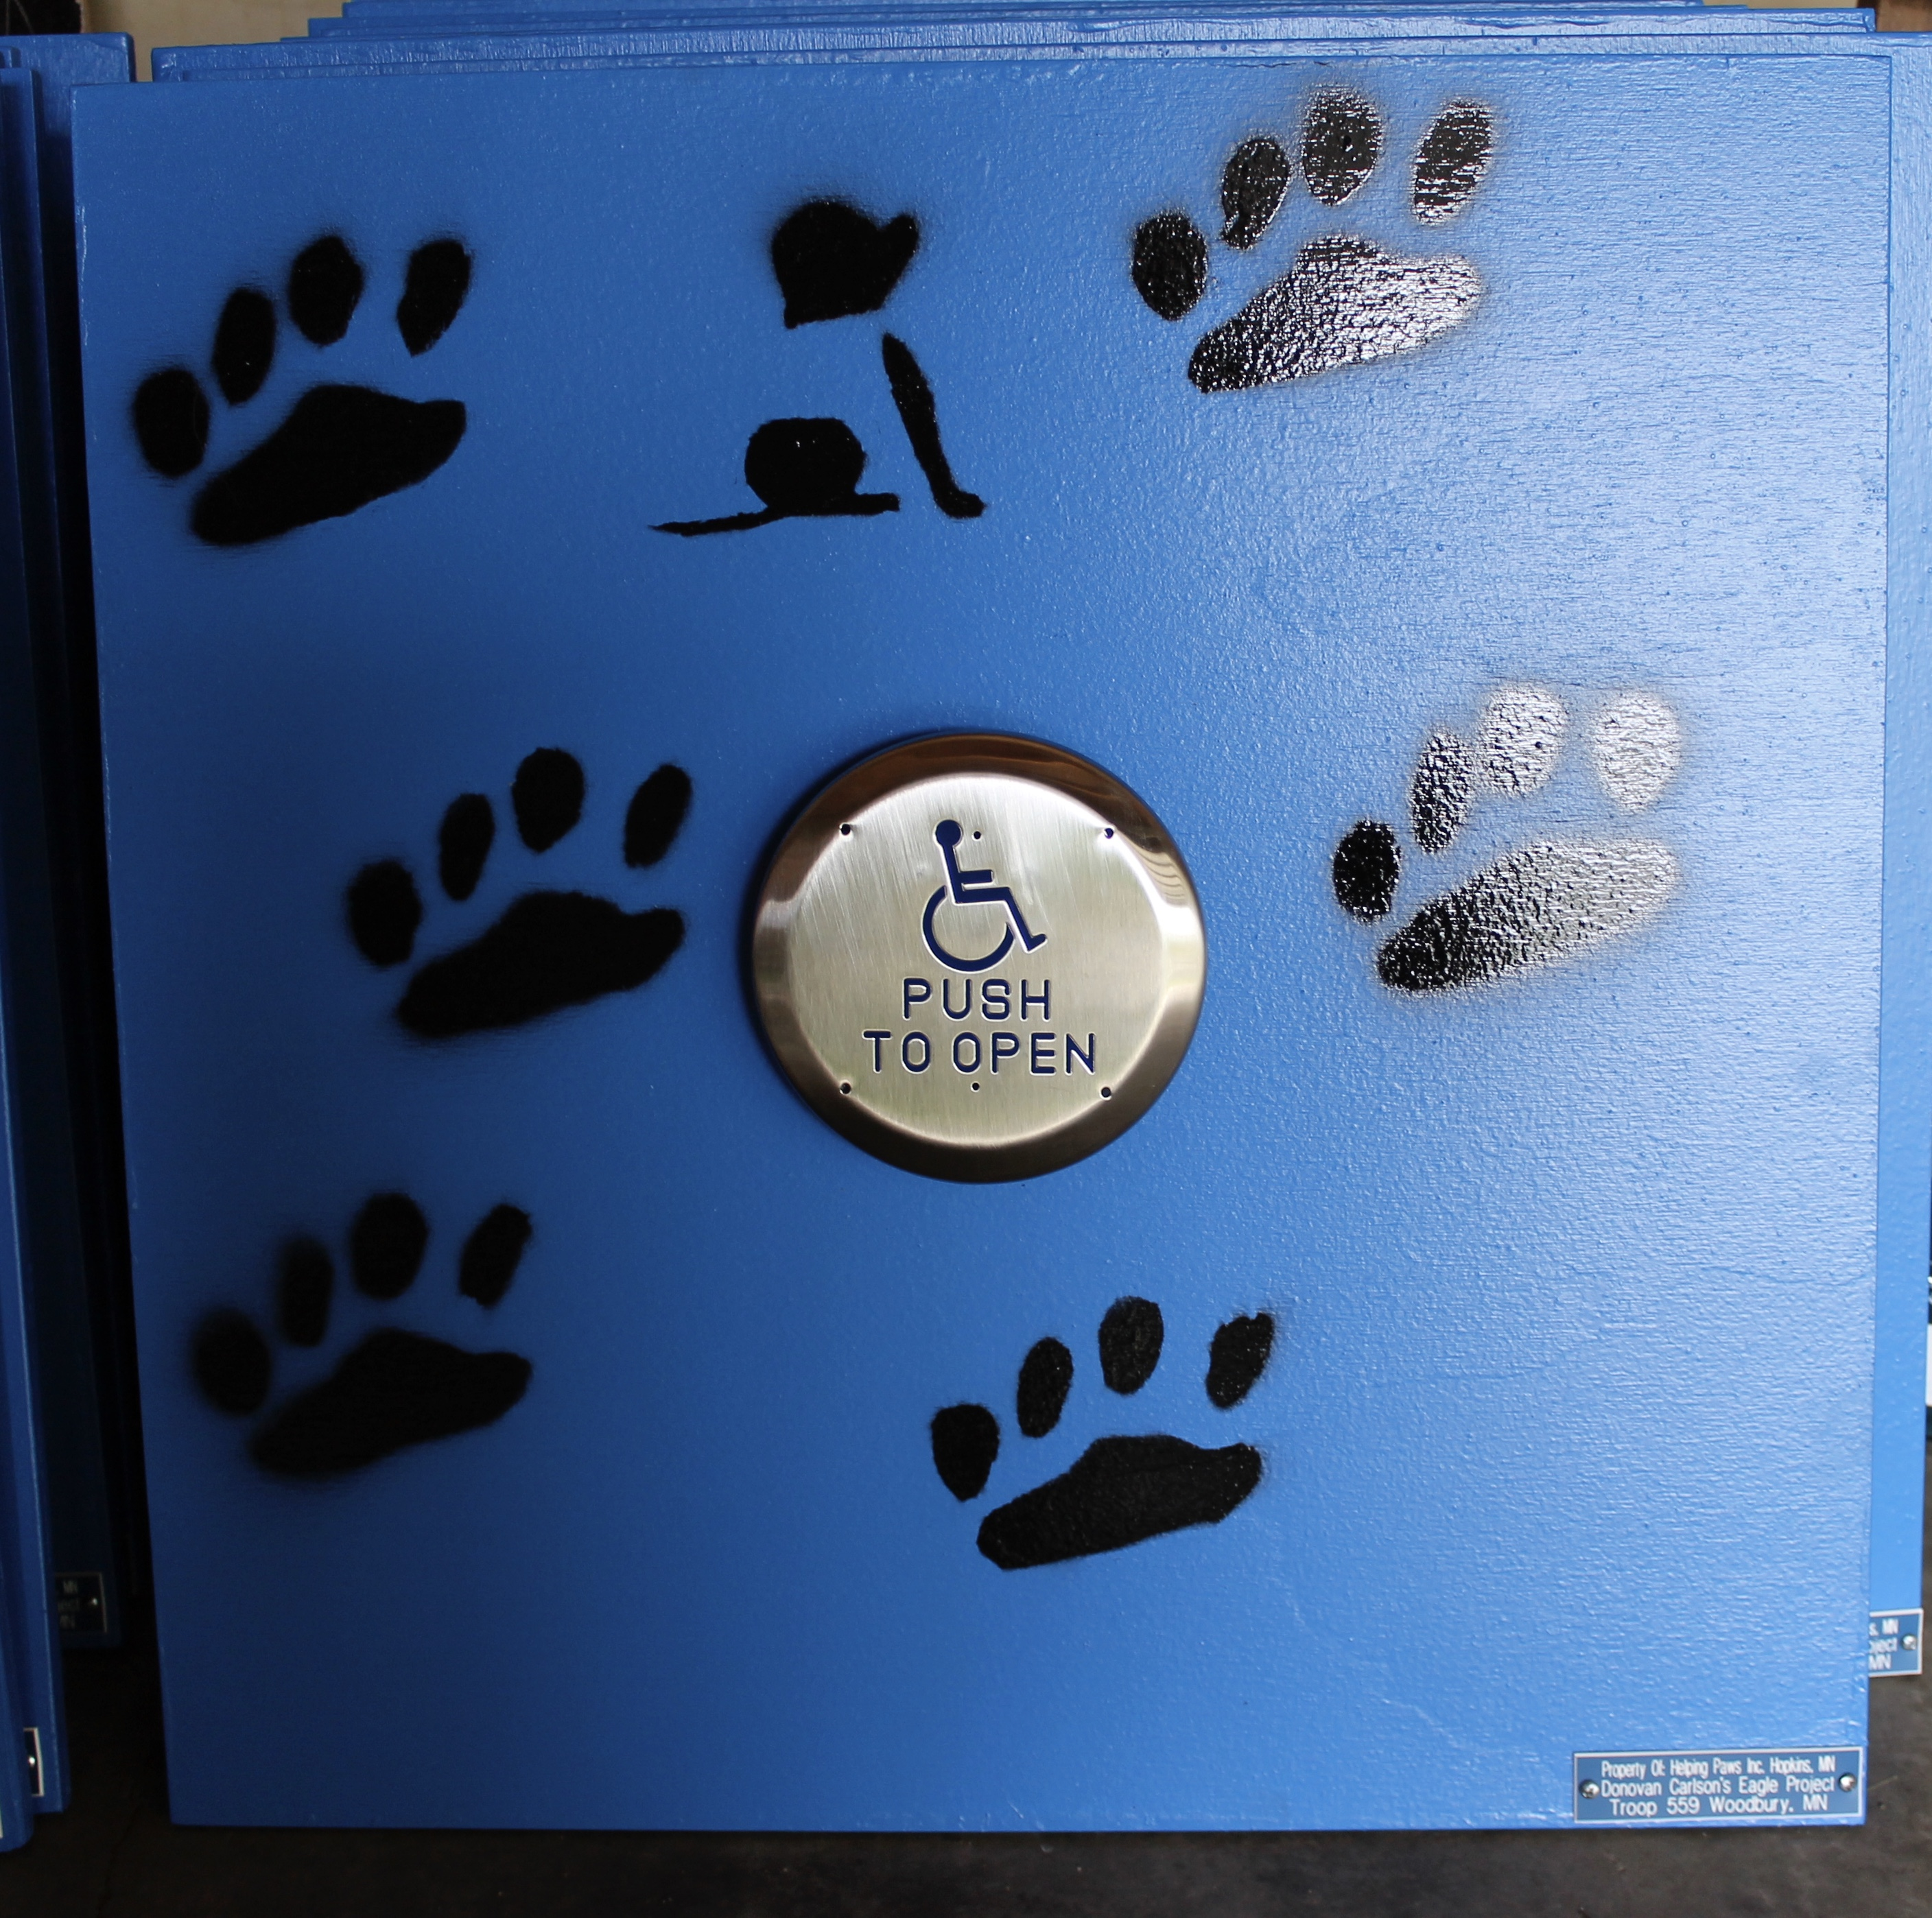 Made training boards for dog trainers to take home for puppies they are training as service dogs for those in need.